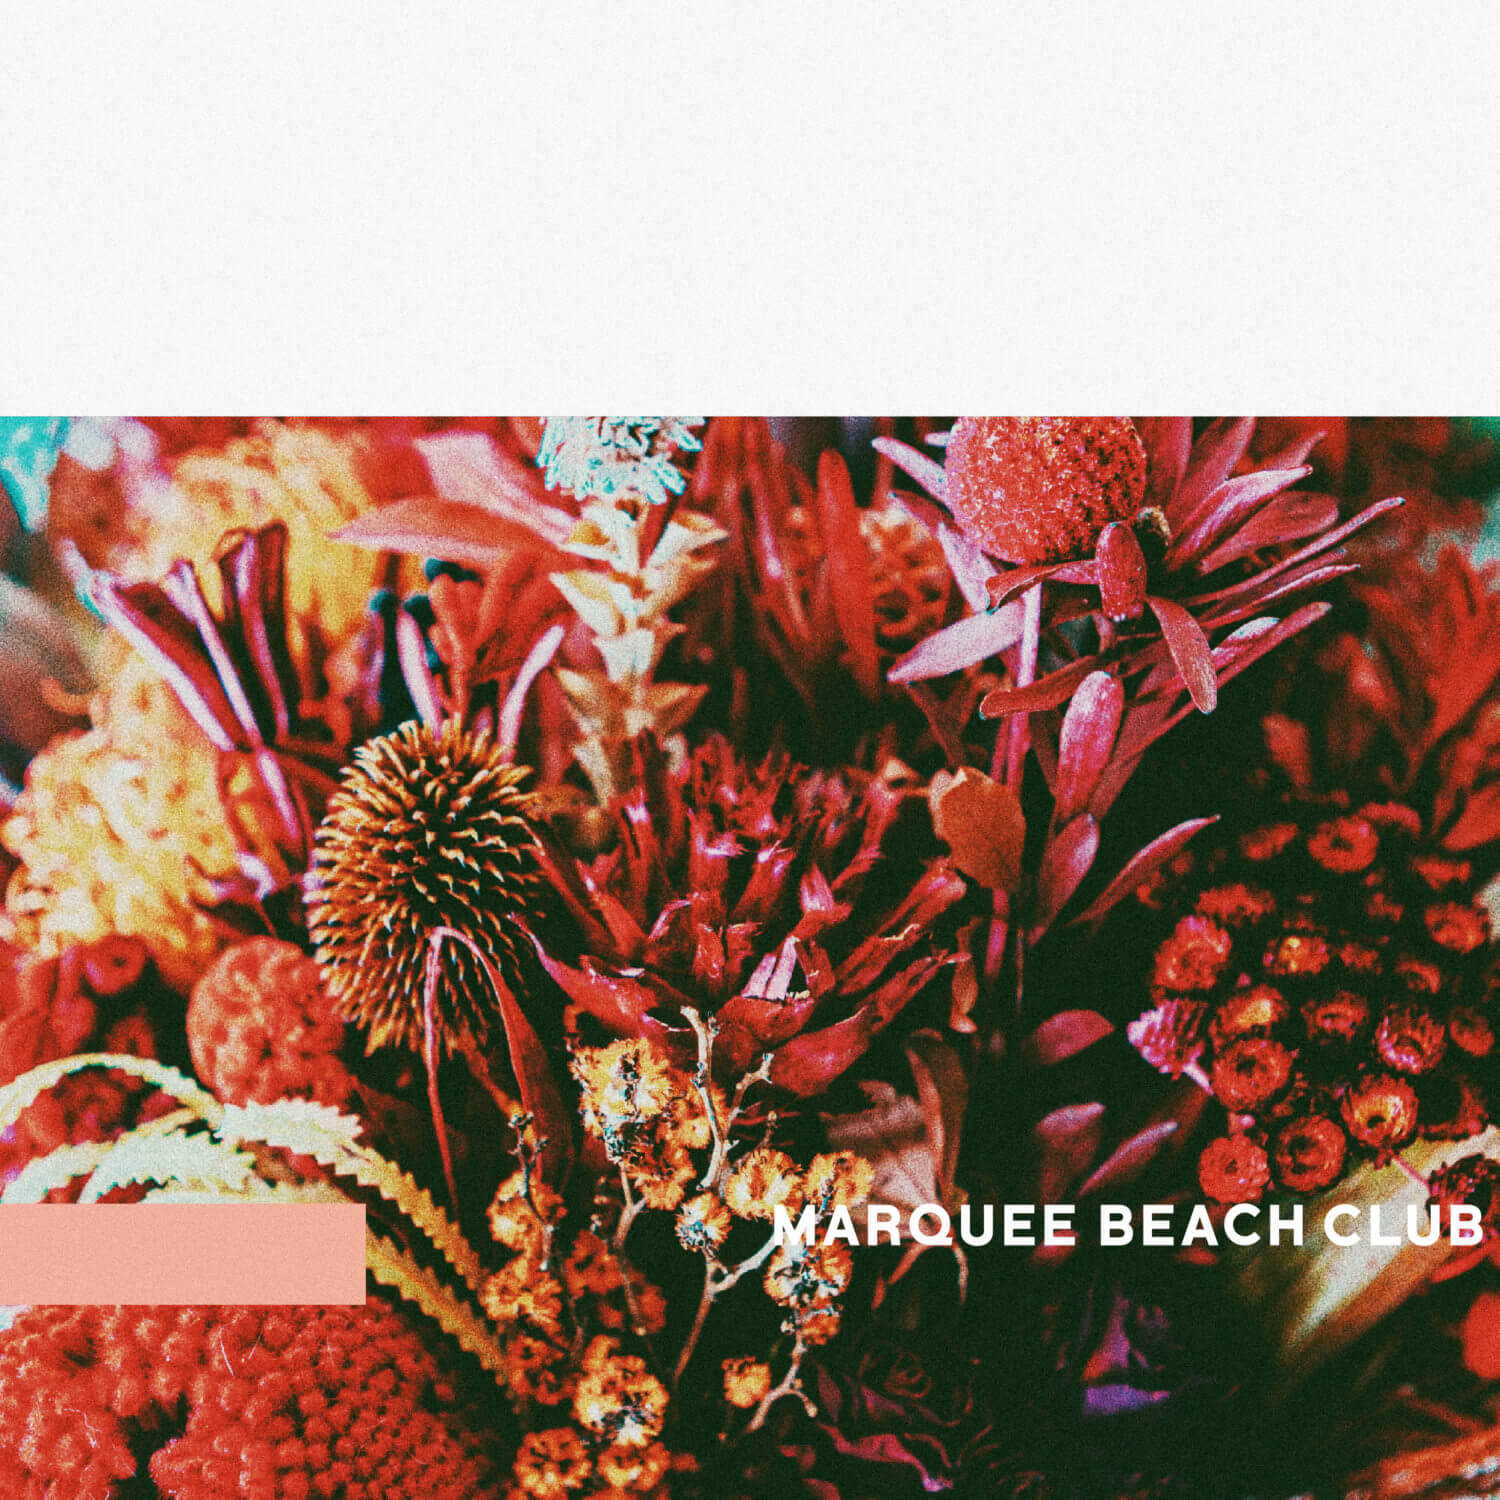 MARQUEE-BEACH-CLUB / home